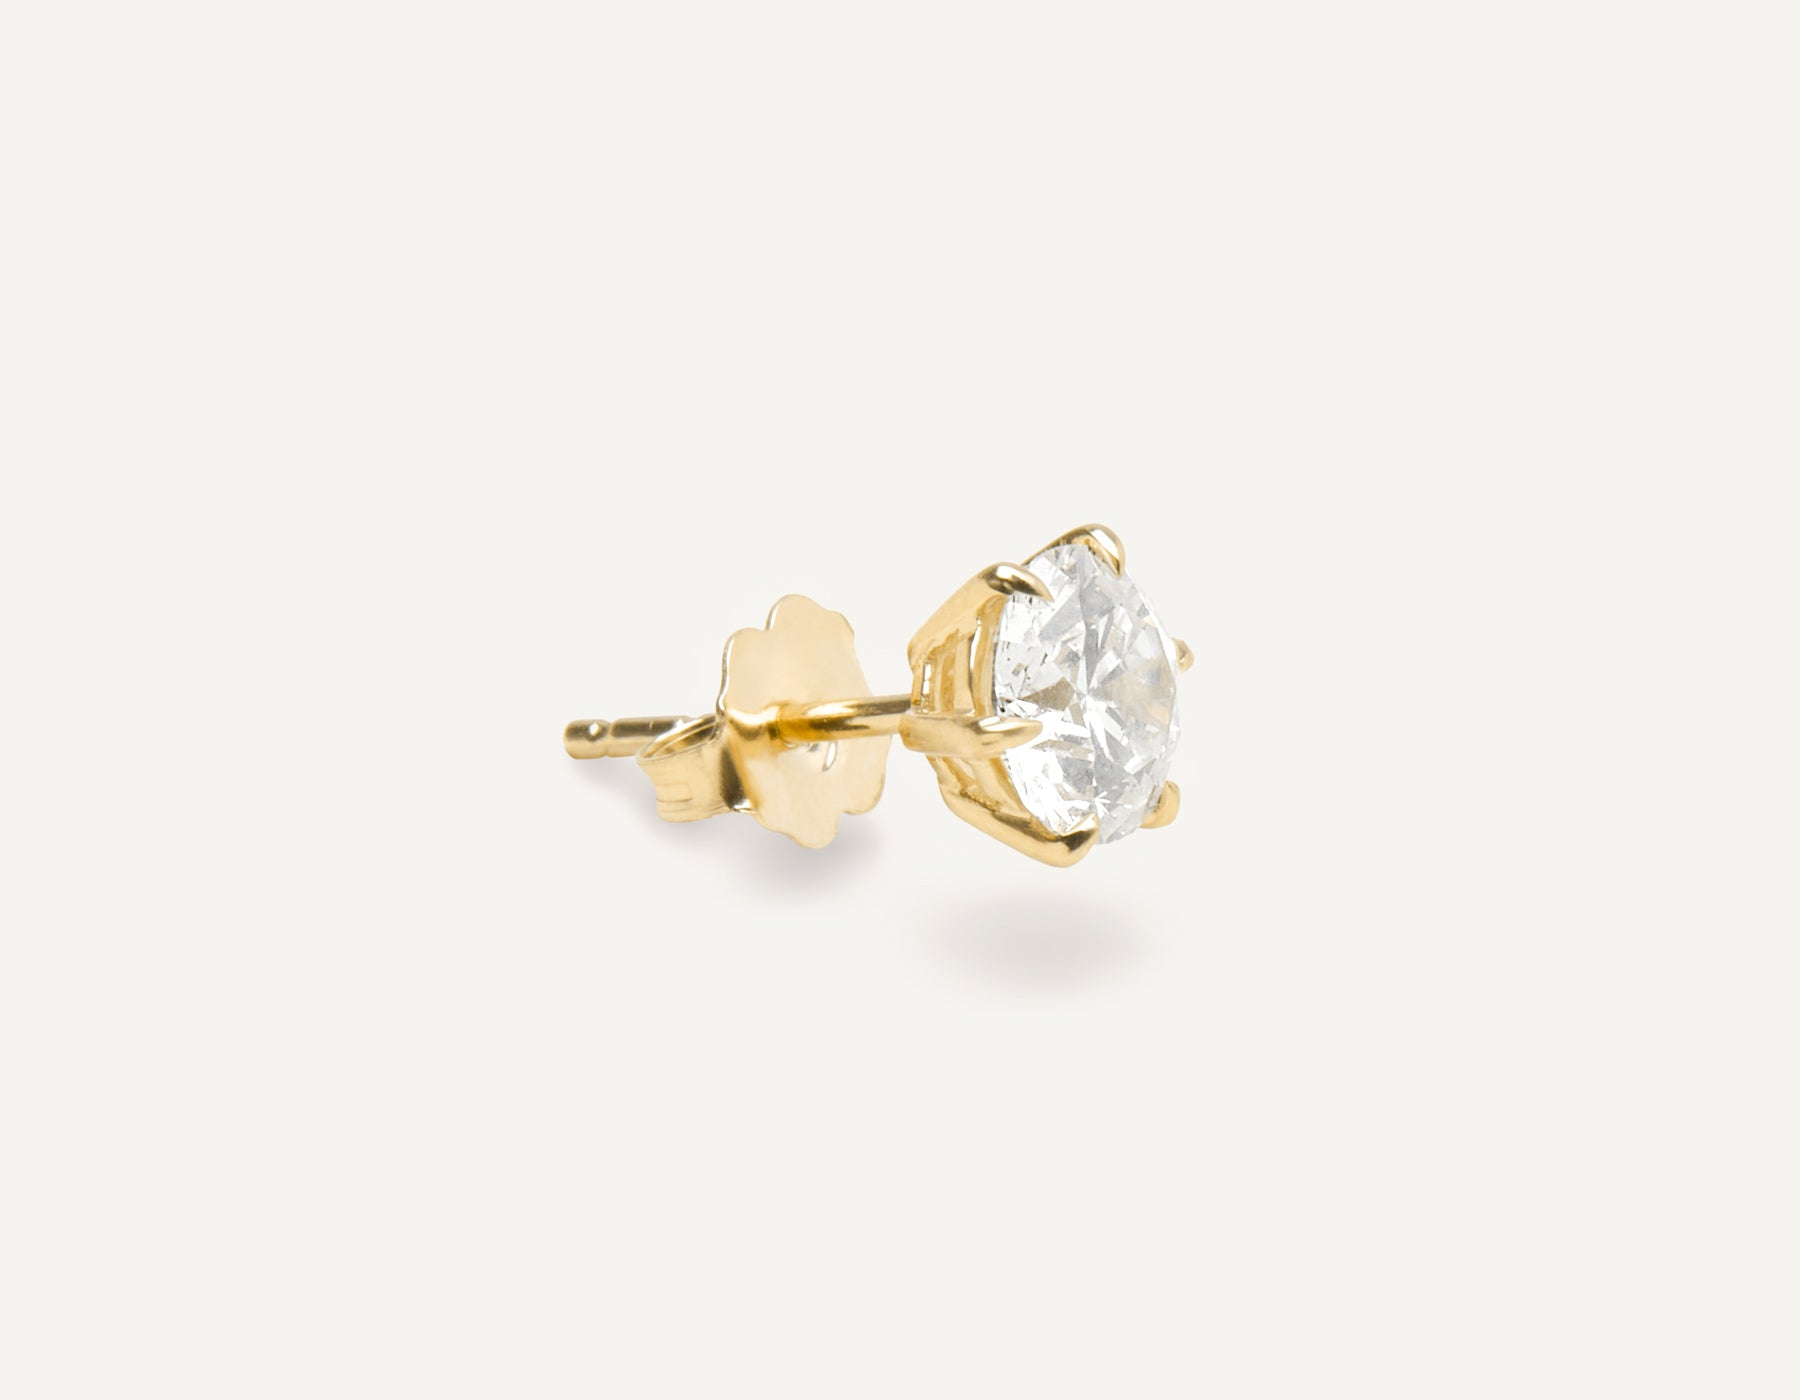 Vrai and oro 1.0 ct Round Brilliant Diamond earring 18k Solid gold classic minimalist, 18K Yellow Gold